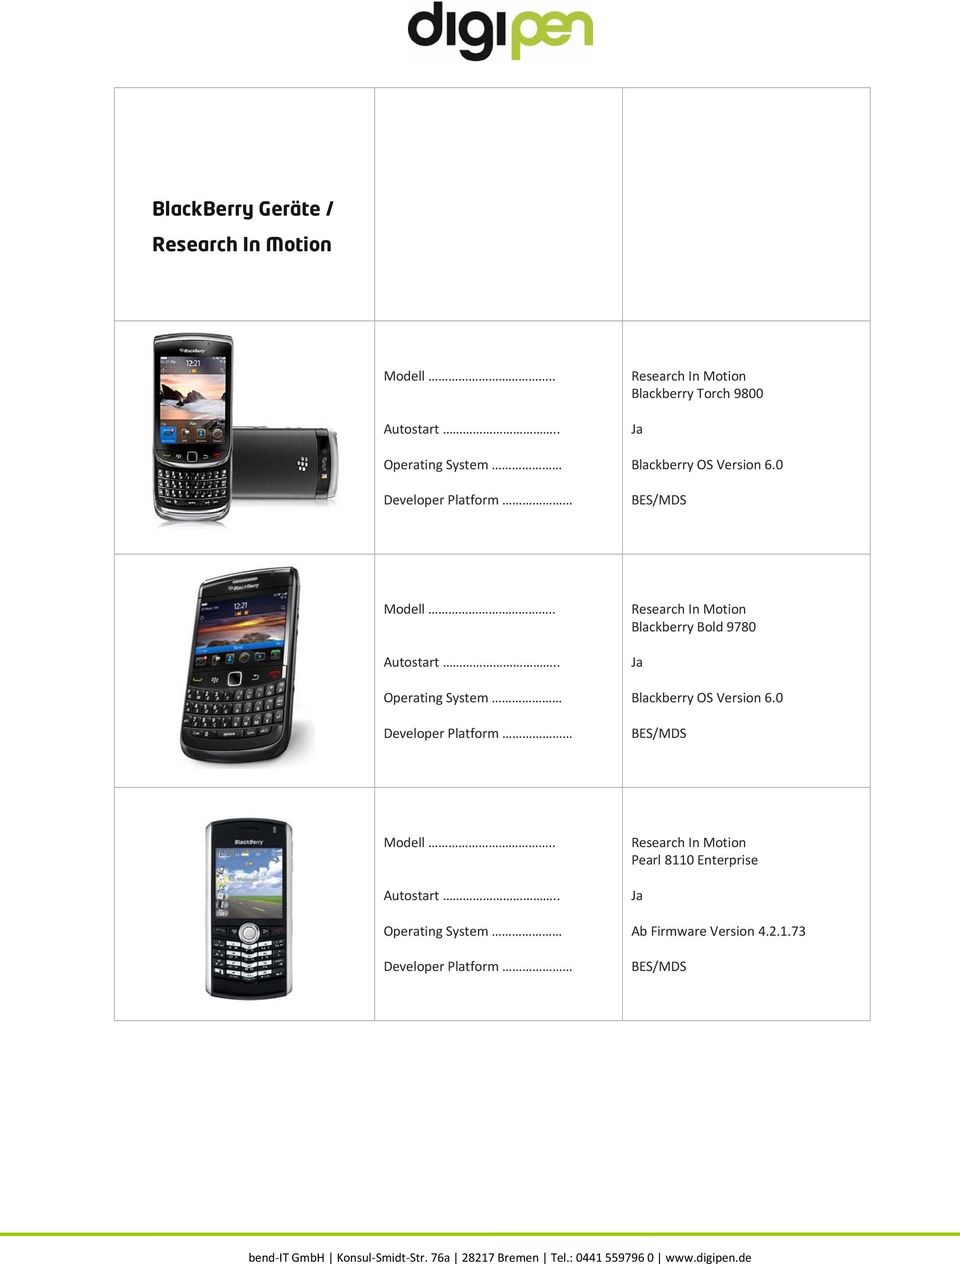 0 BES/MDS Research In Motion Blackberry Bold 9780 Blackberry OS